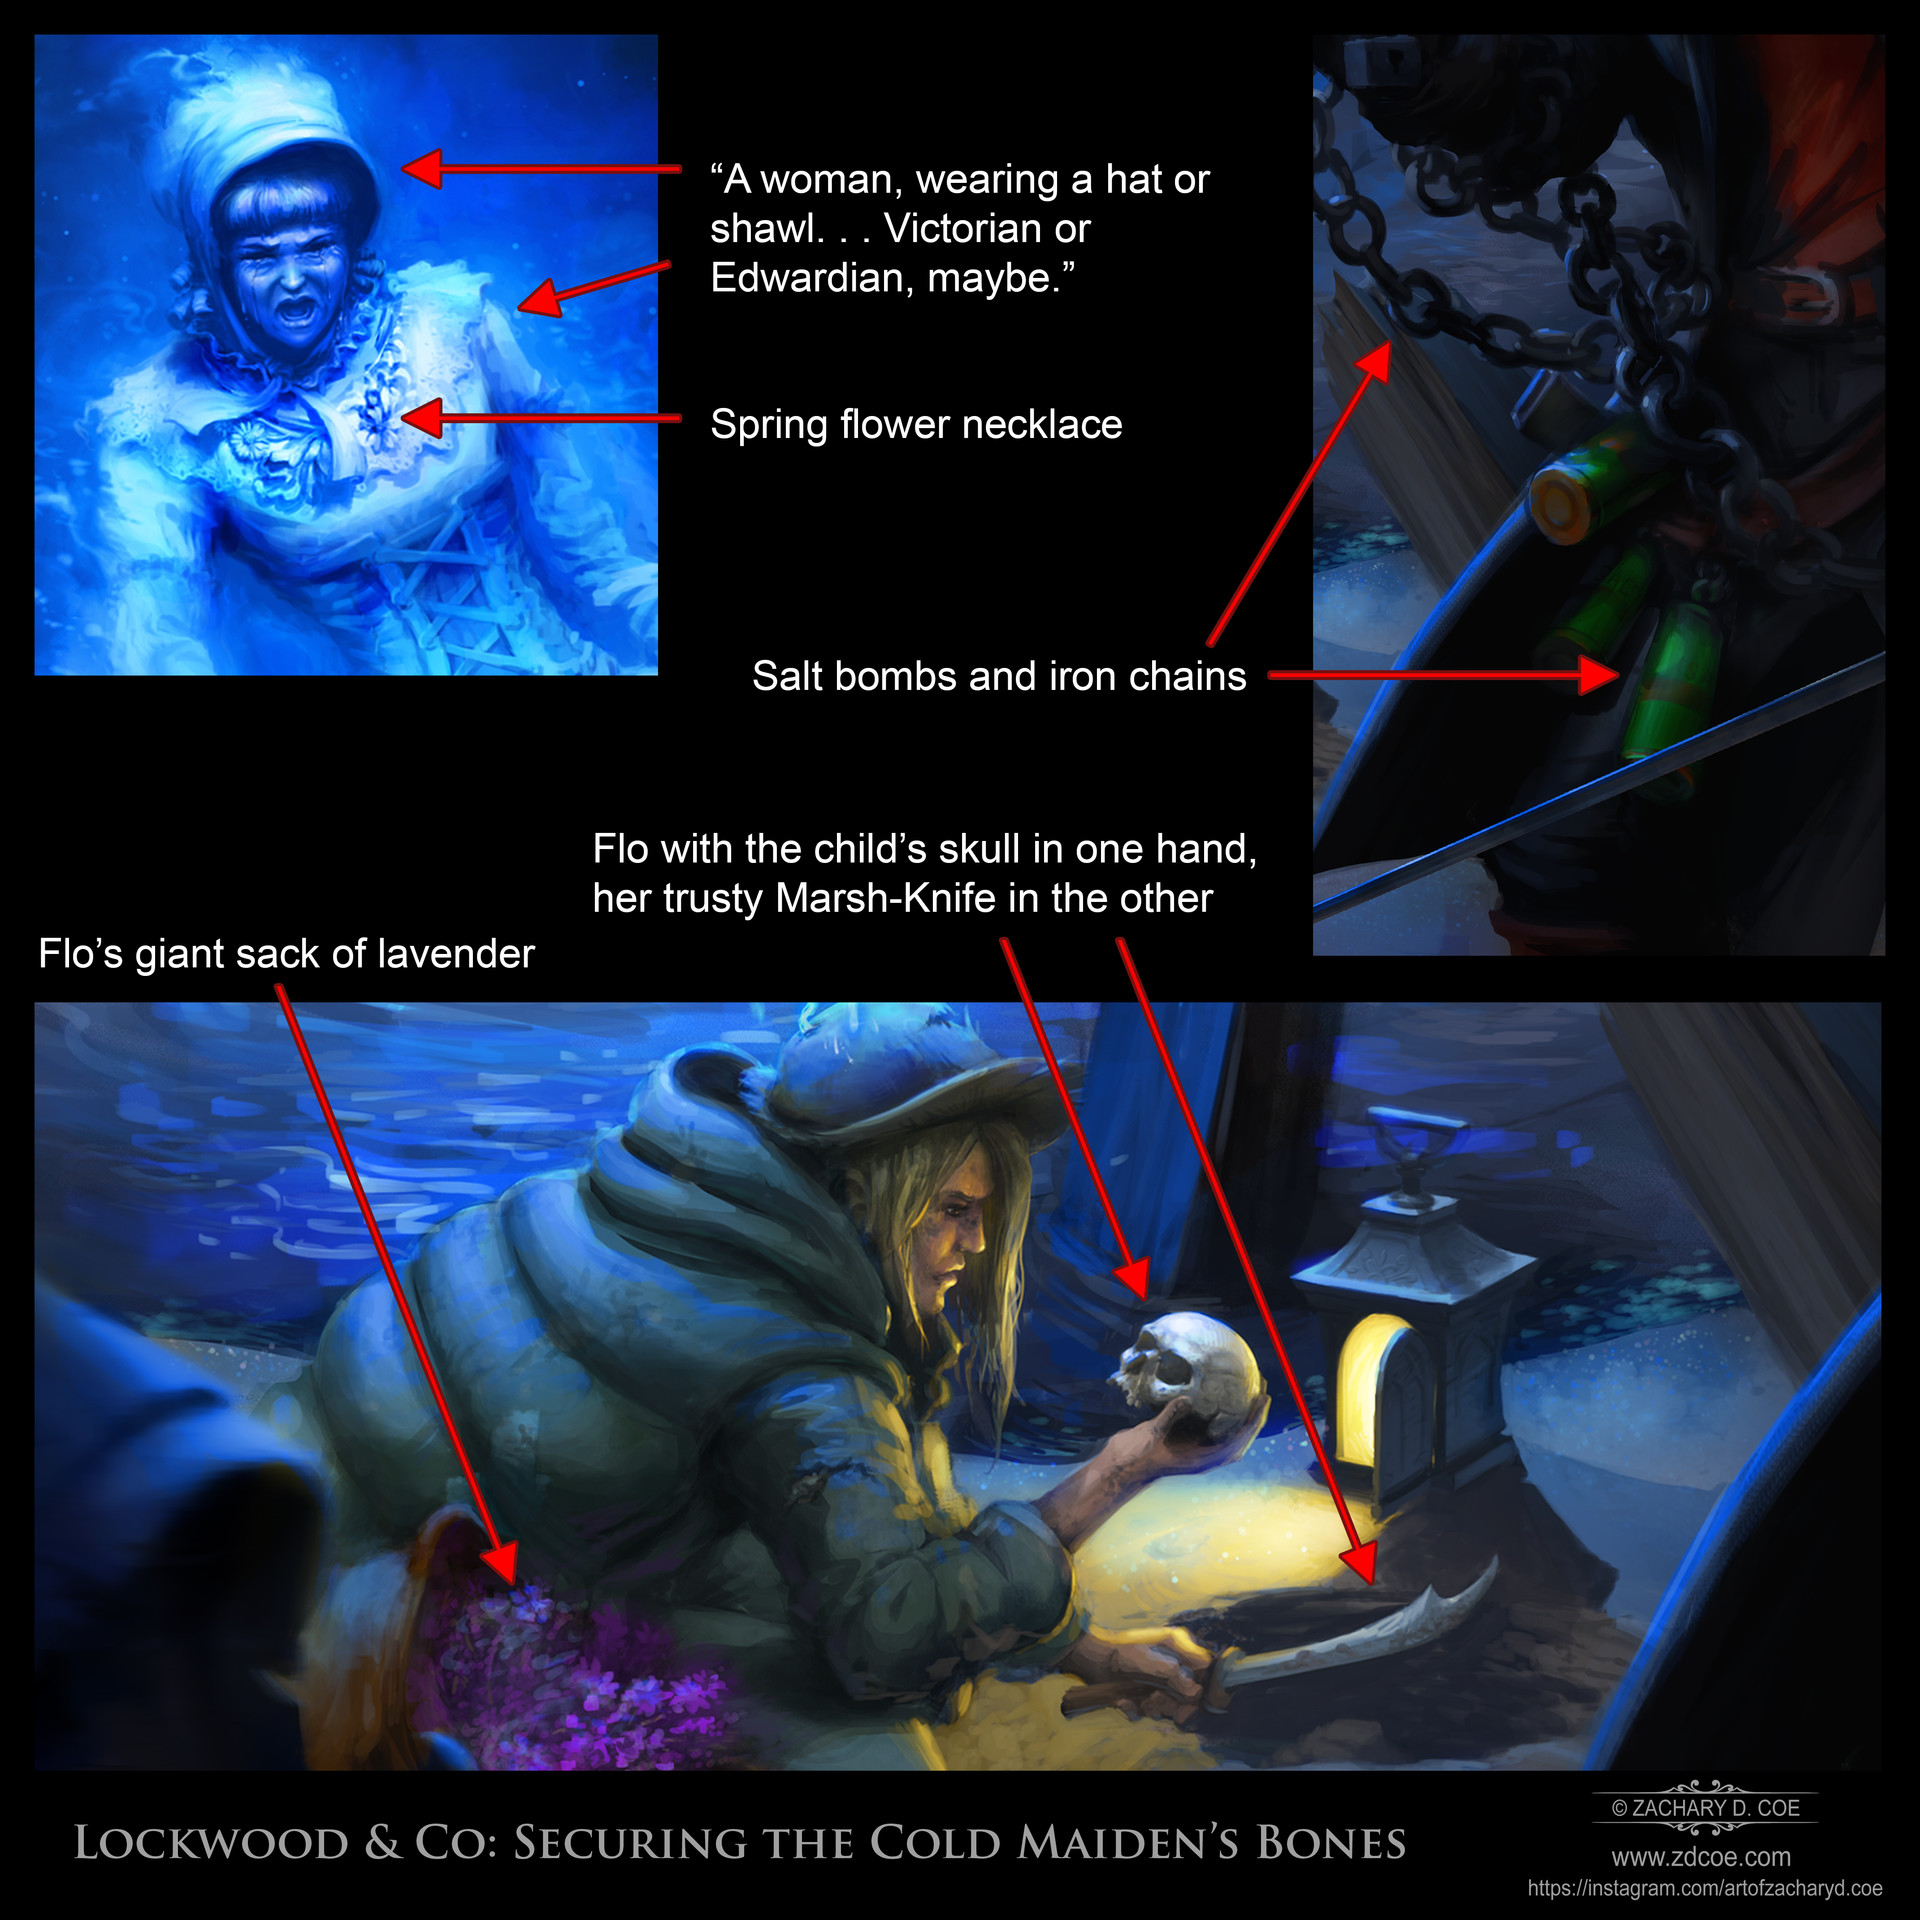 LOCKWOOD & CO: SECURING THE COLD MAIDEN'S BONES - Story Detail Callouts by Zachary D. Coe